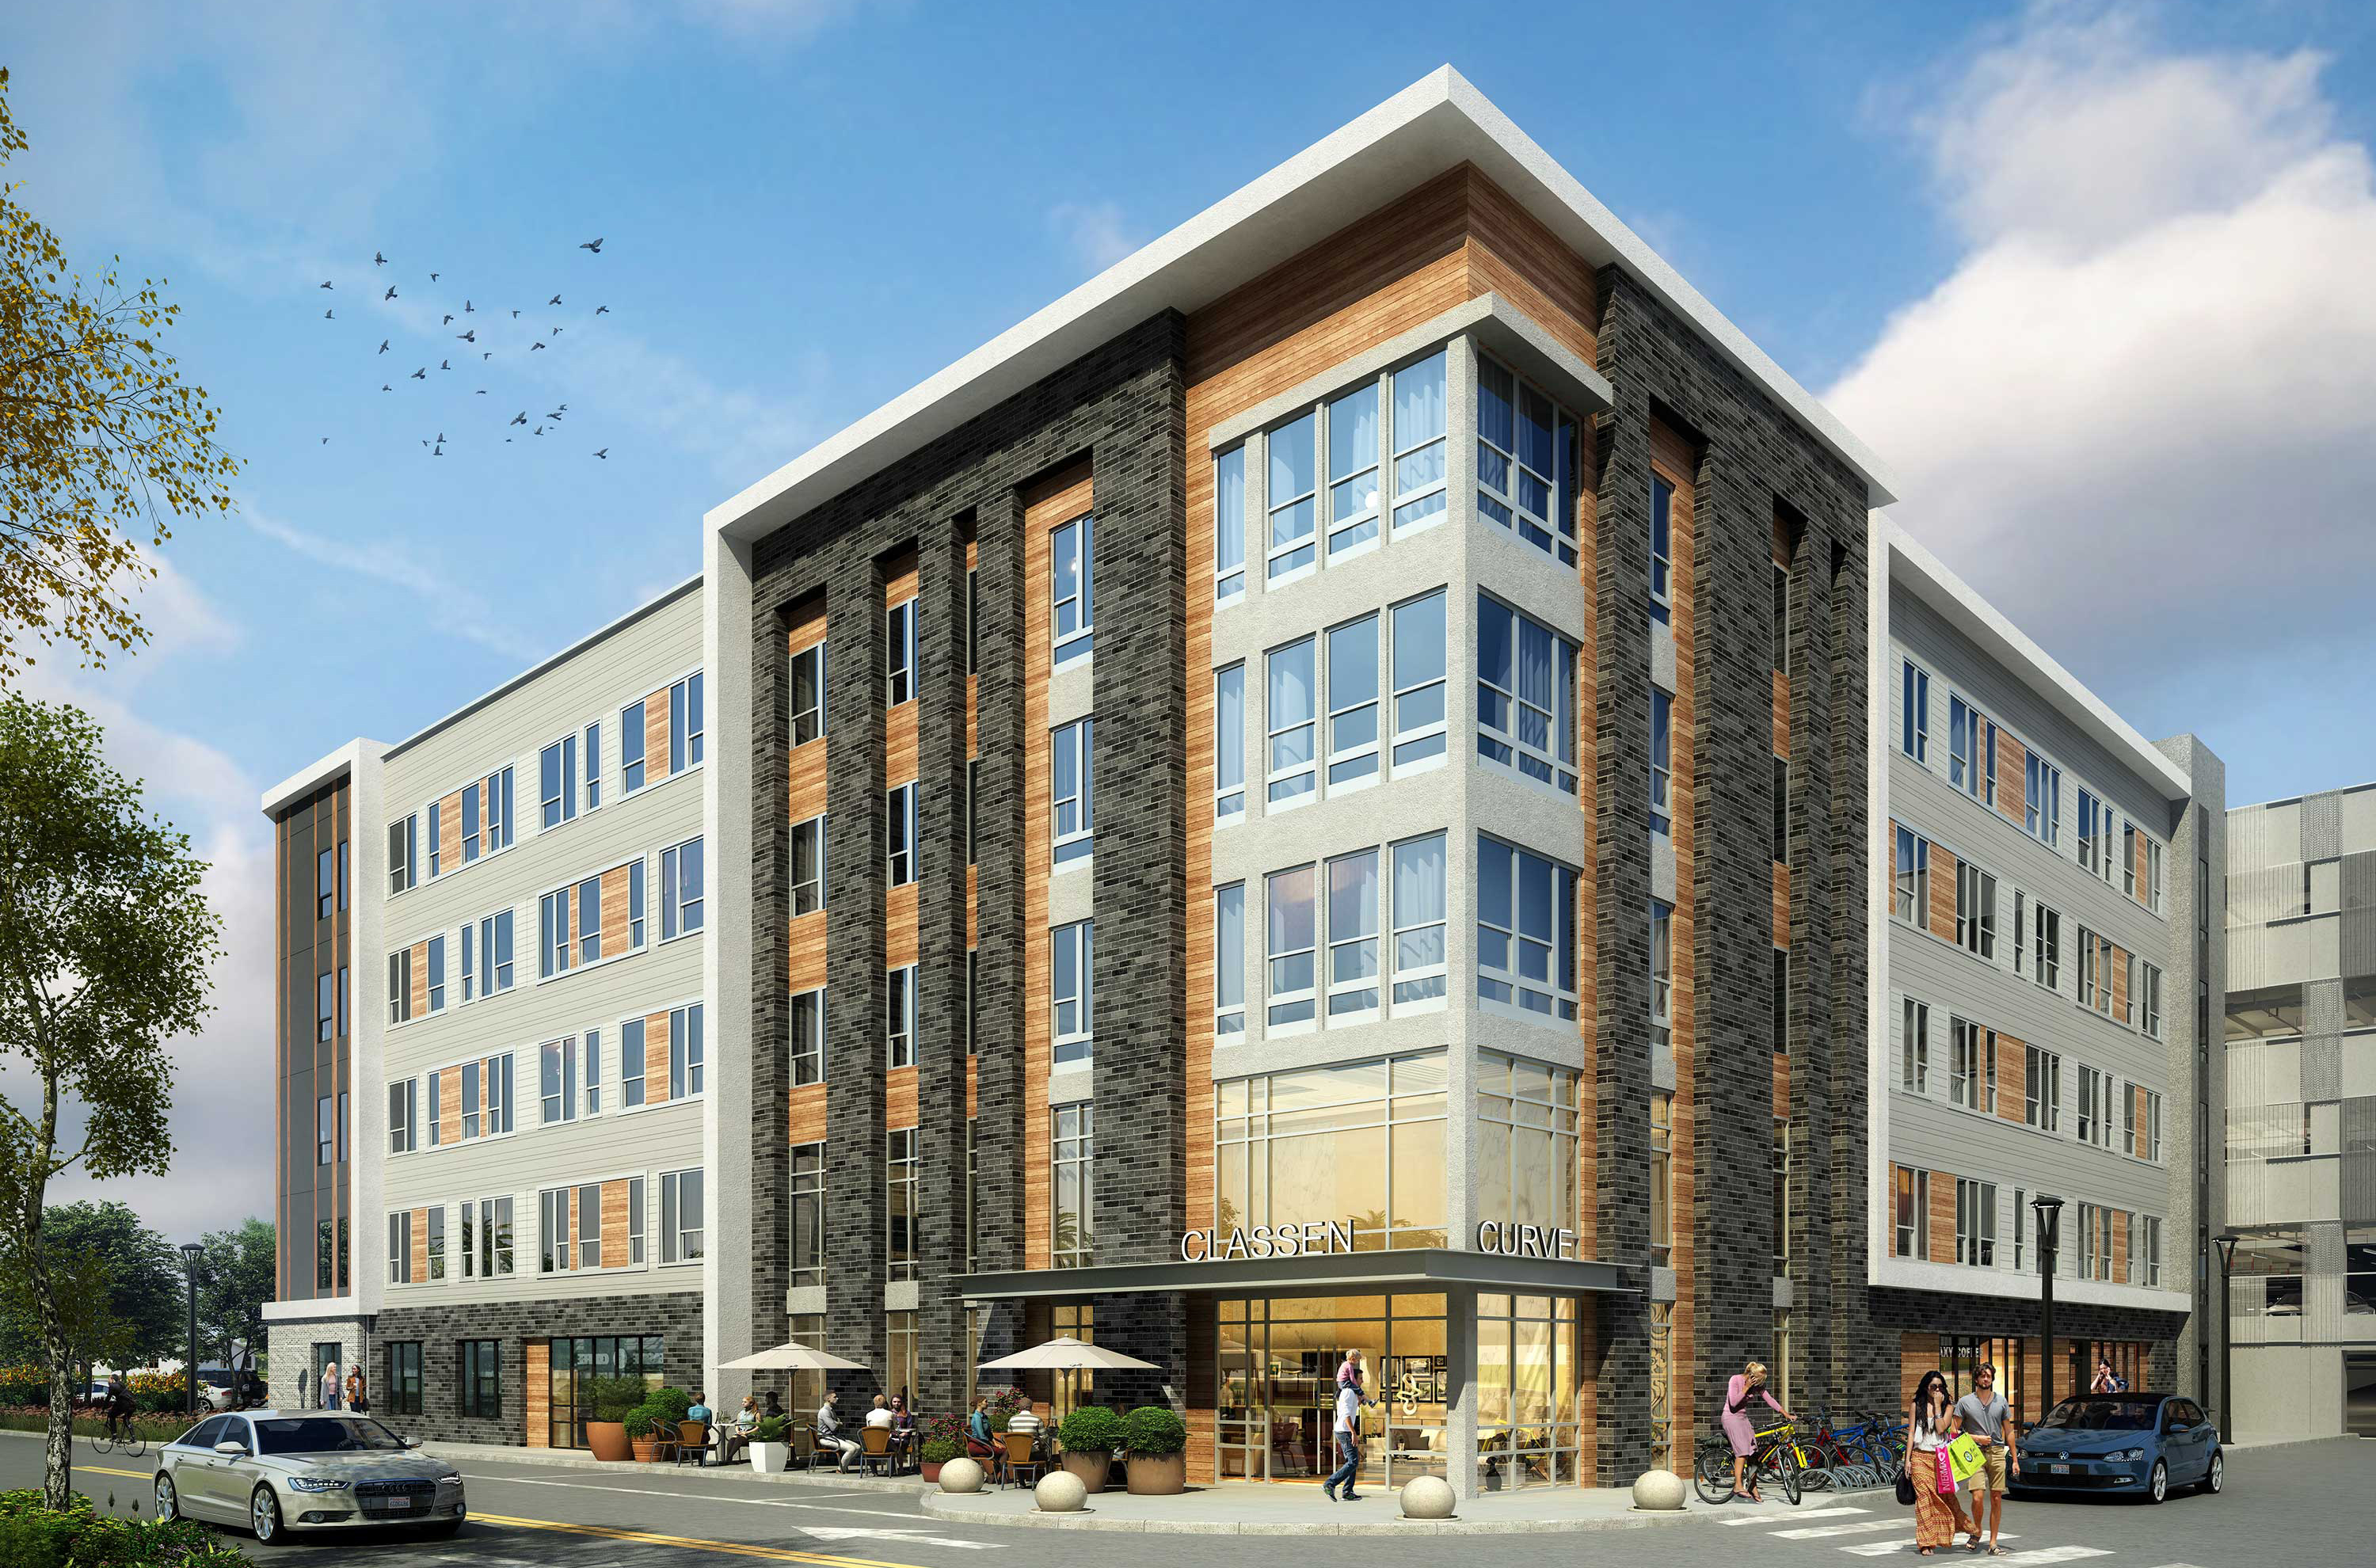 Rendering of the Canton at Classen Curve apartments